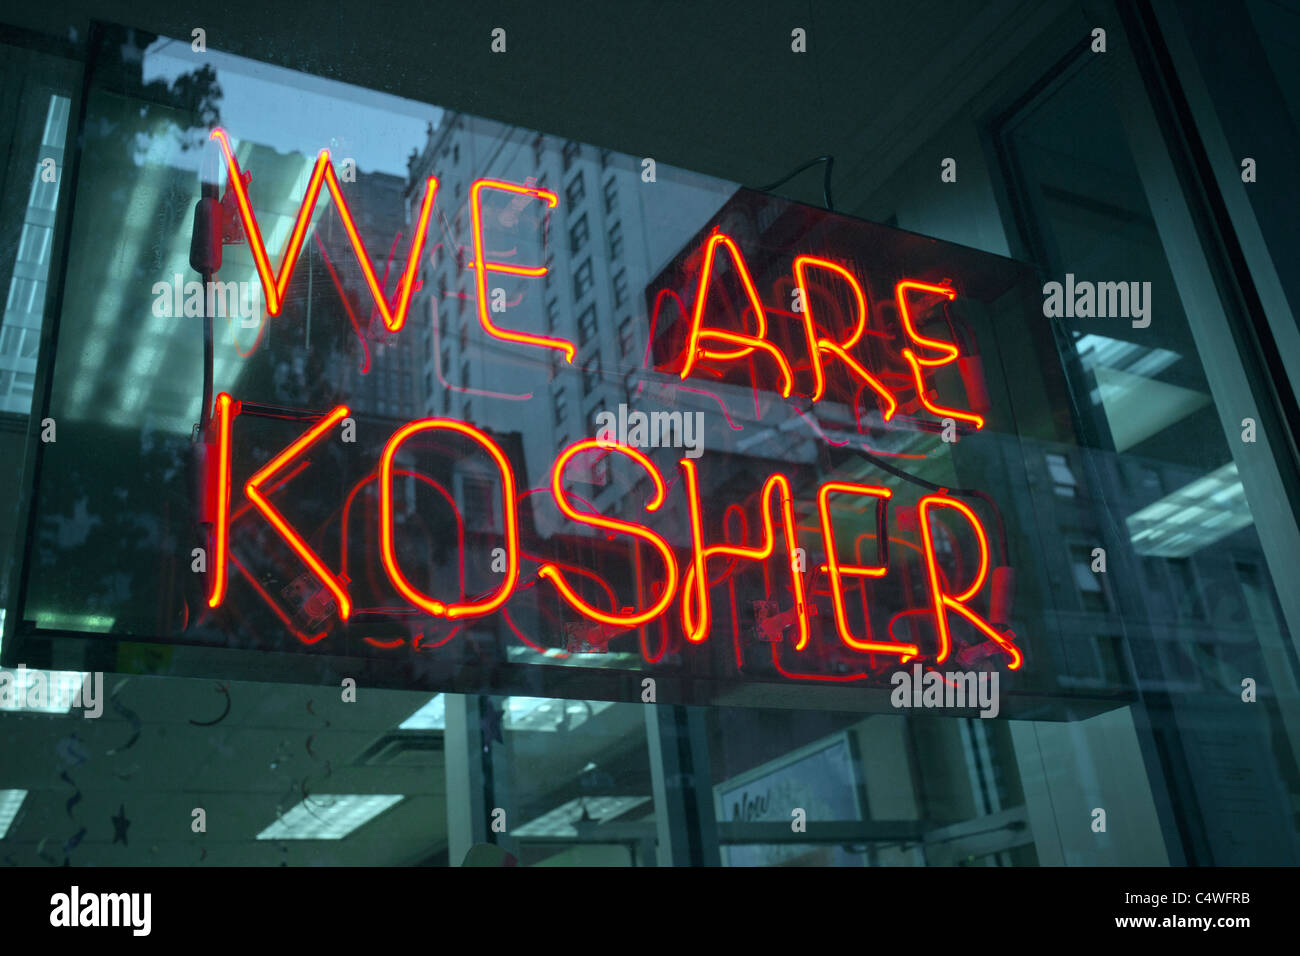 A sign in the window of a Dunkin Donuts in New York advertises that they are kosher and observe Jewish dietary laws - Stock Image